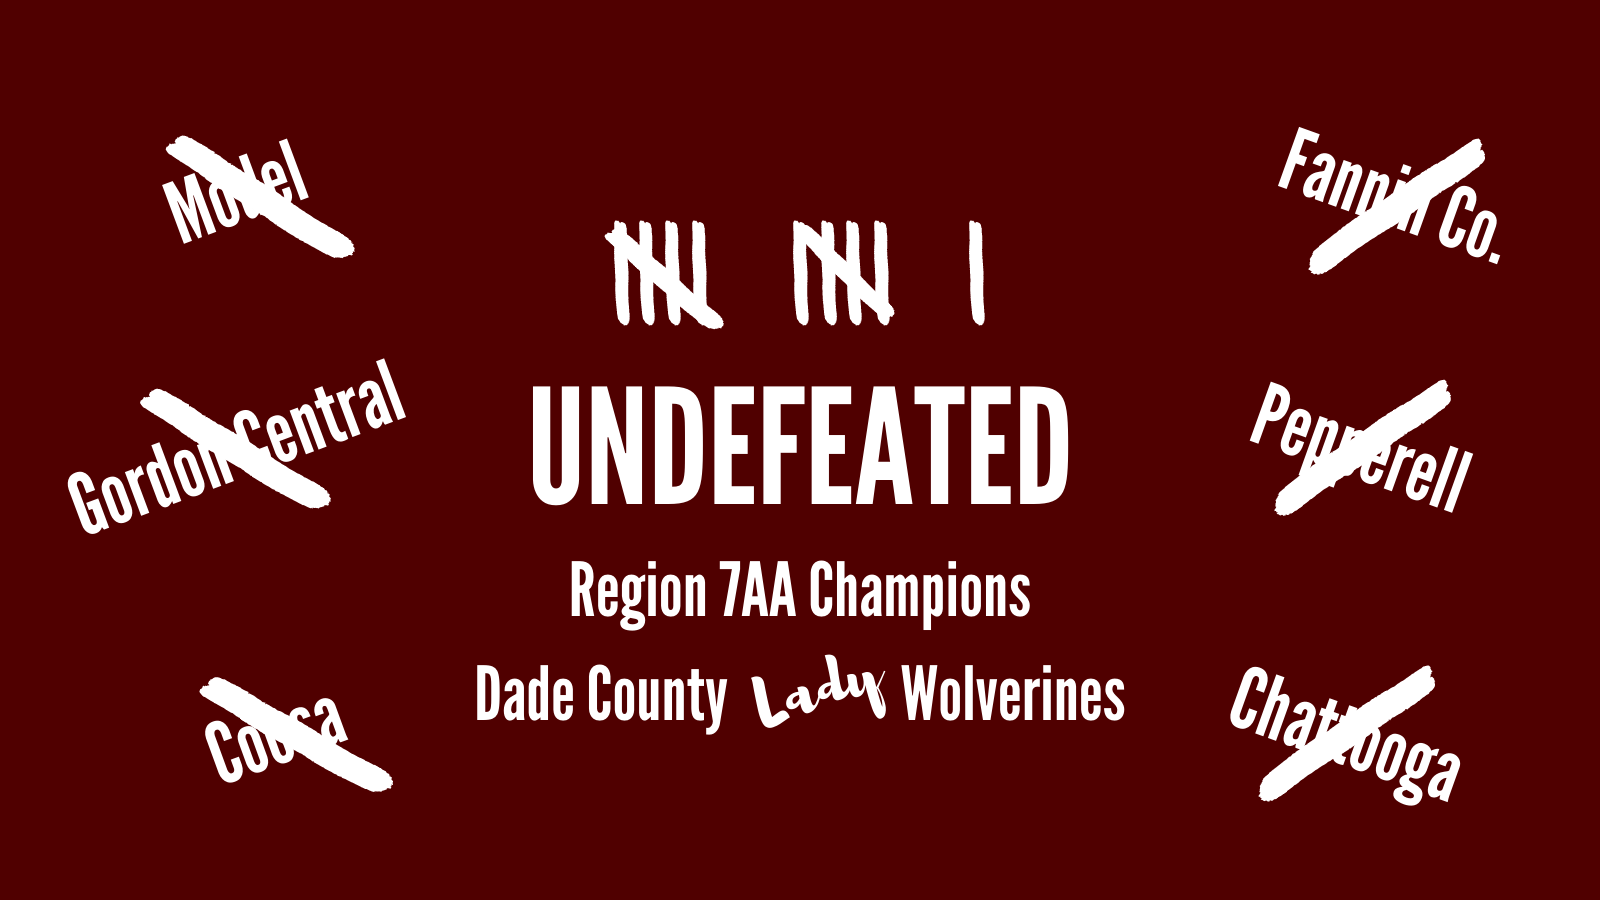 UNDEFEATED……….Pretty Cool Headline